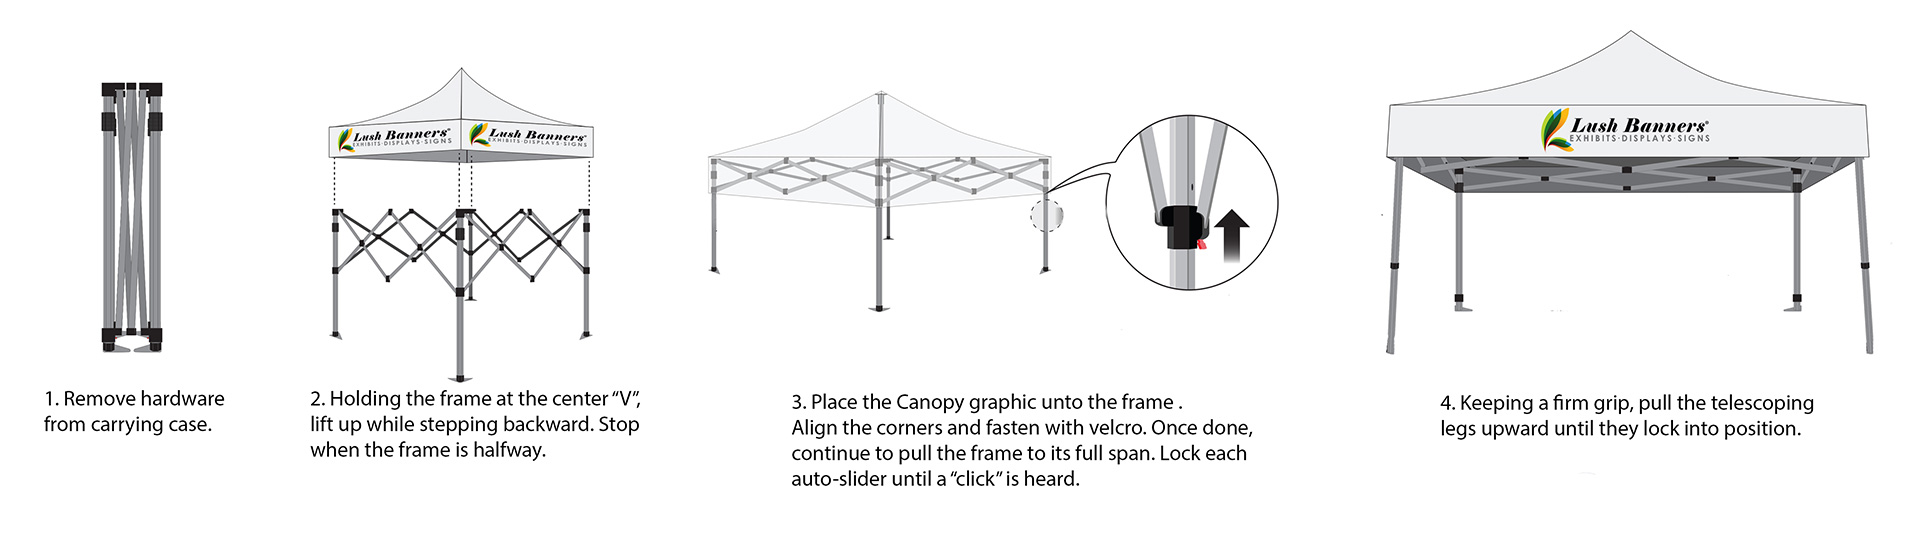 How to Assemble Custom Canopy Tents